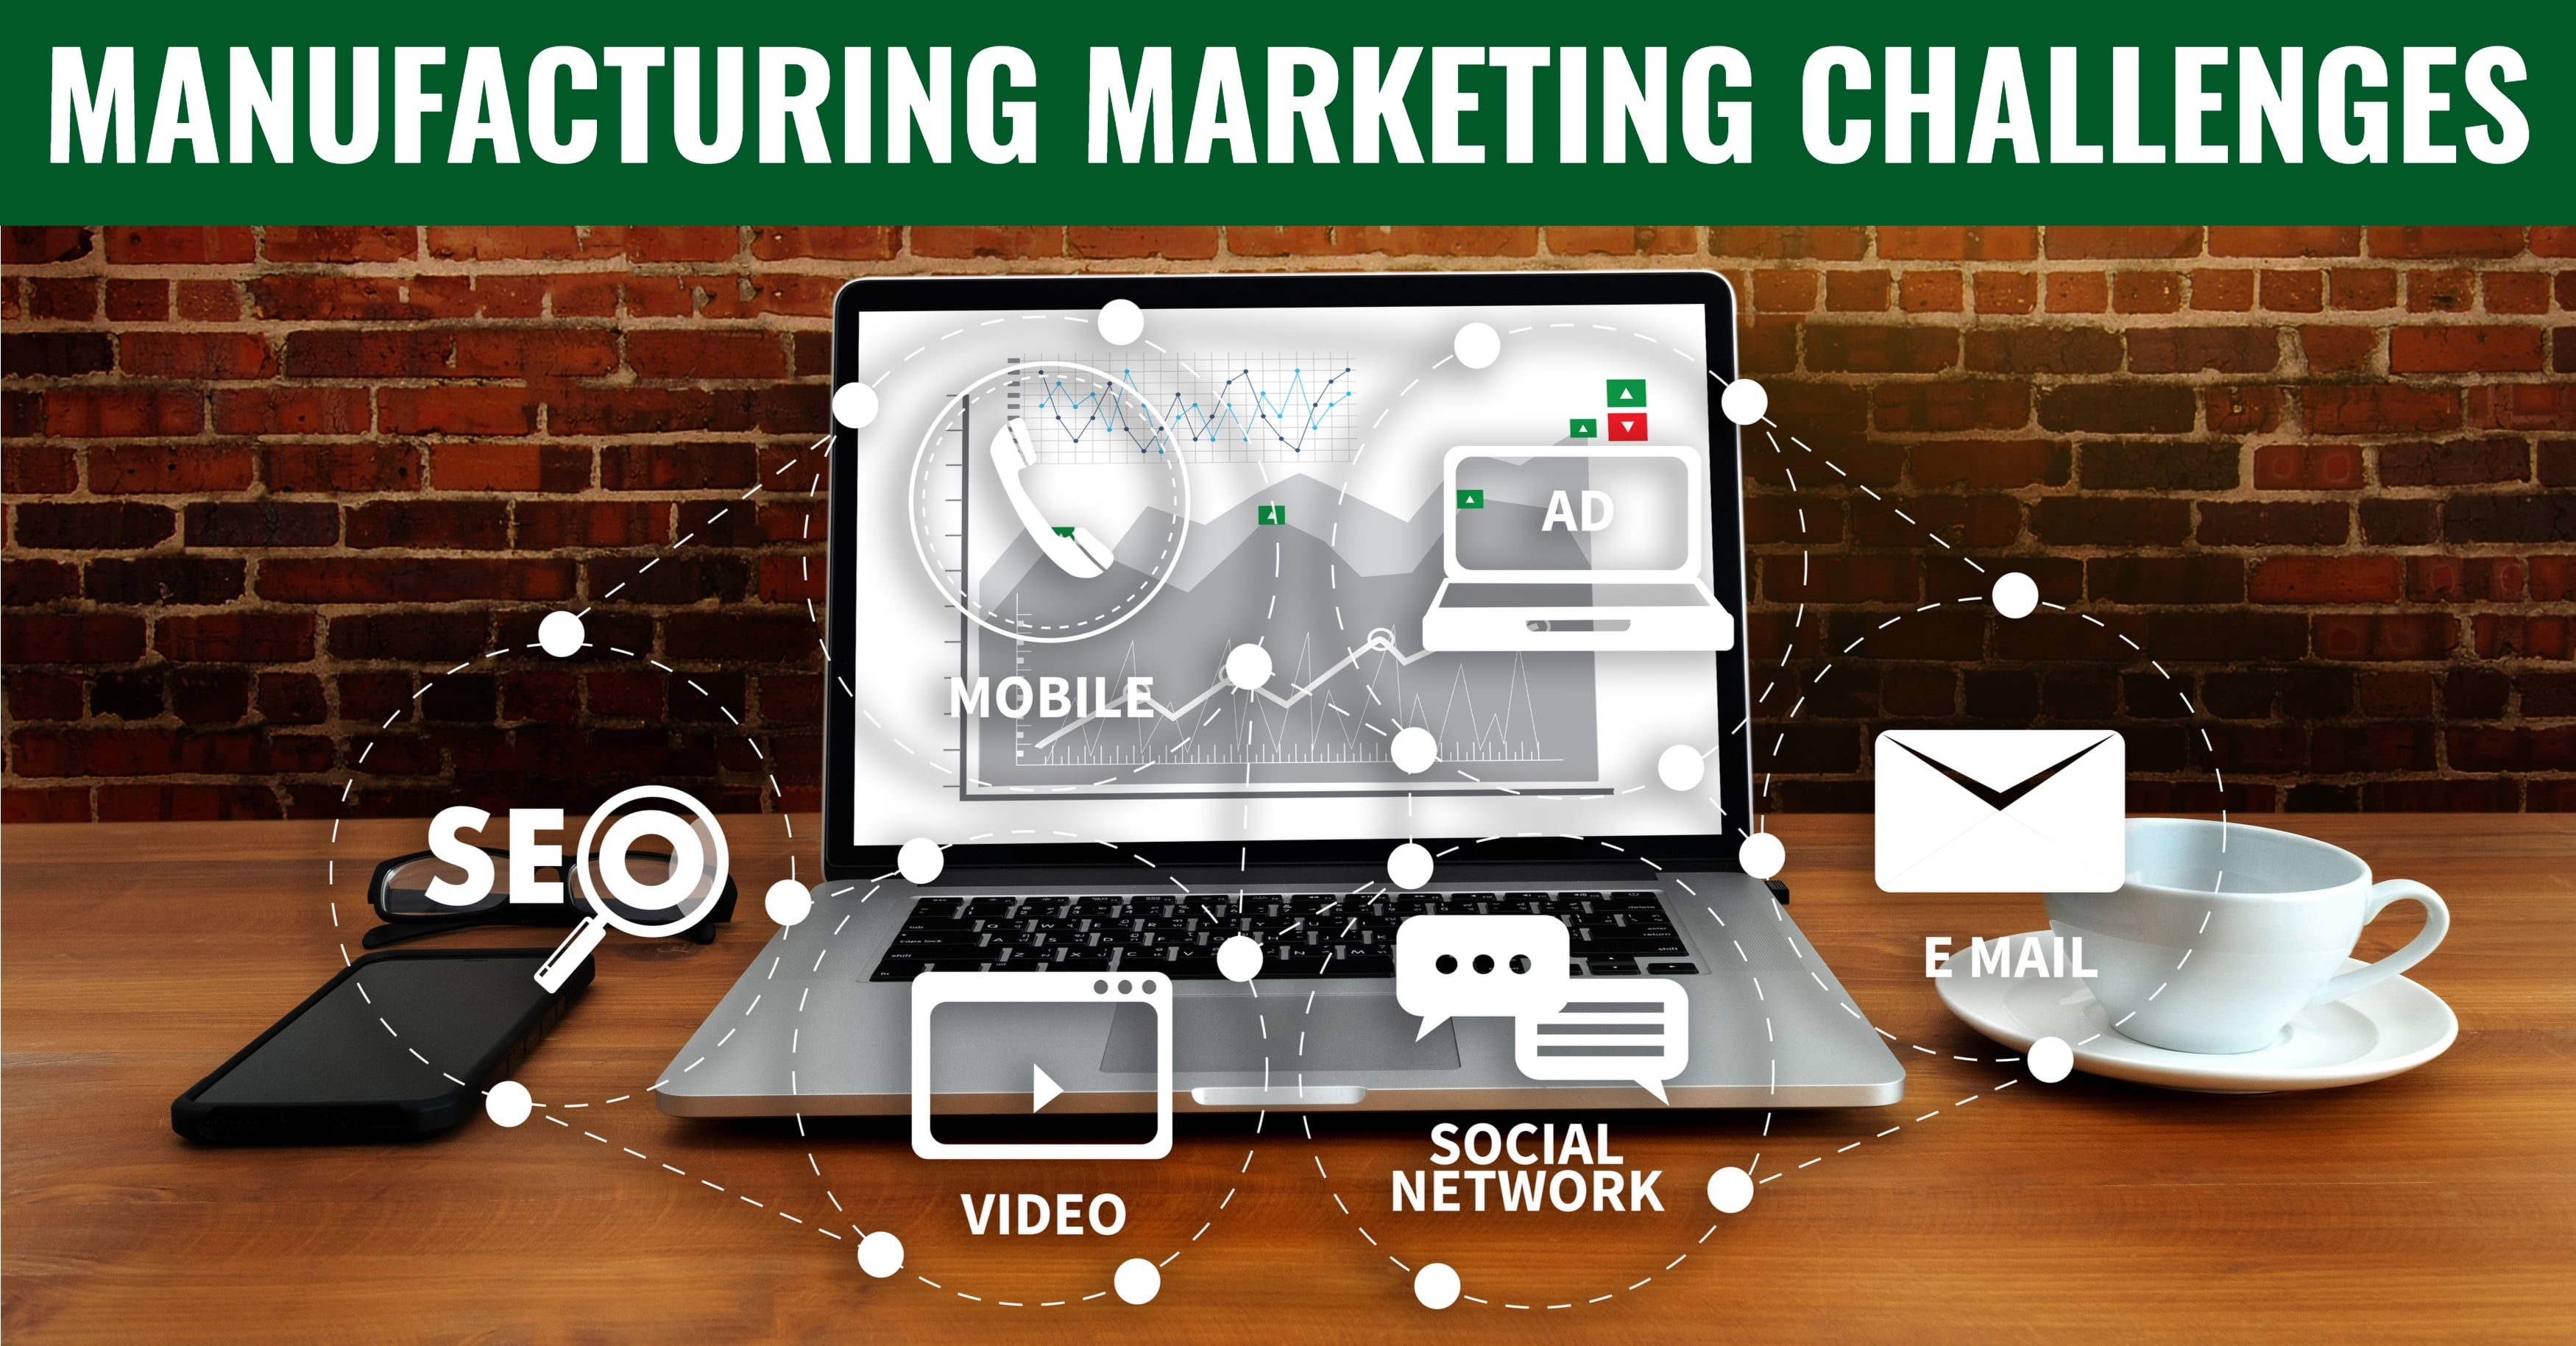 Manufacturing Marketing Challenges